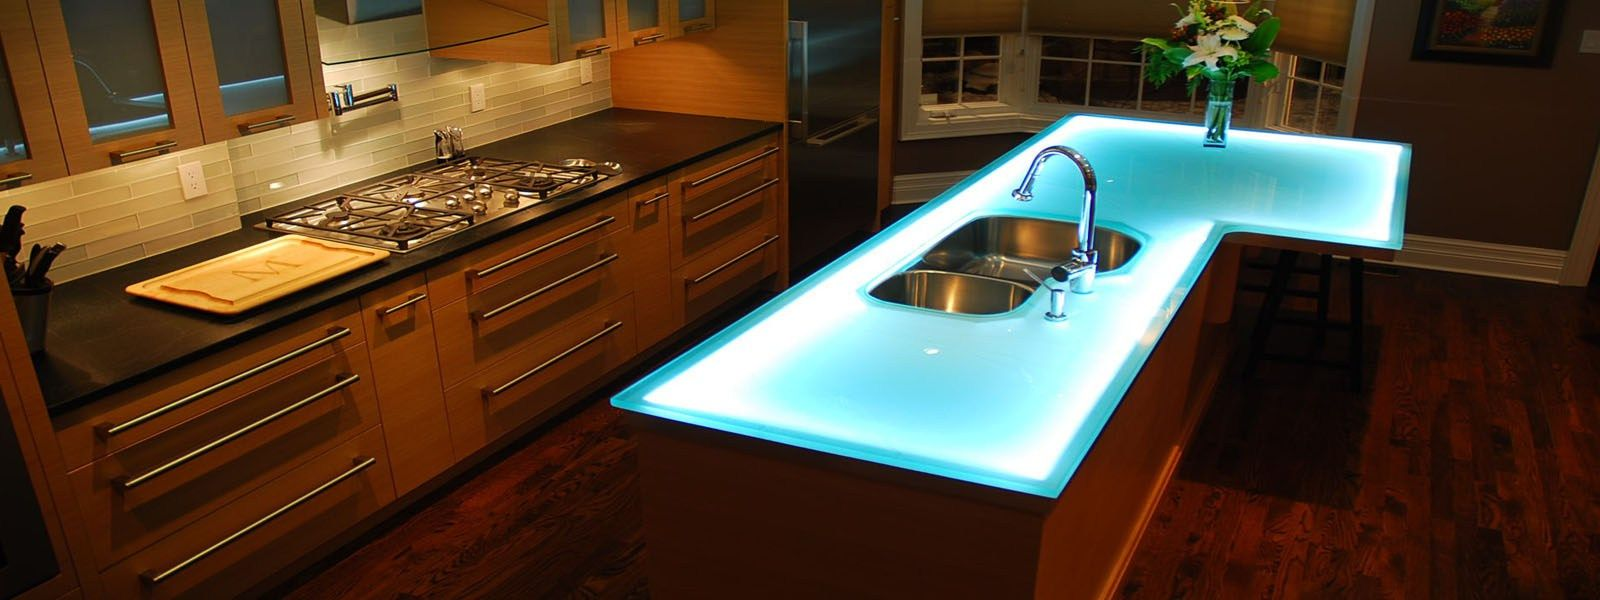 55+ Quartz Countertops Springfield Il   Kitchen Counter Top Ideas Check  More At Http: